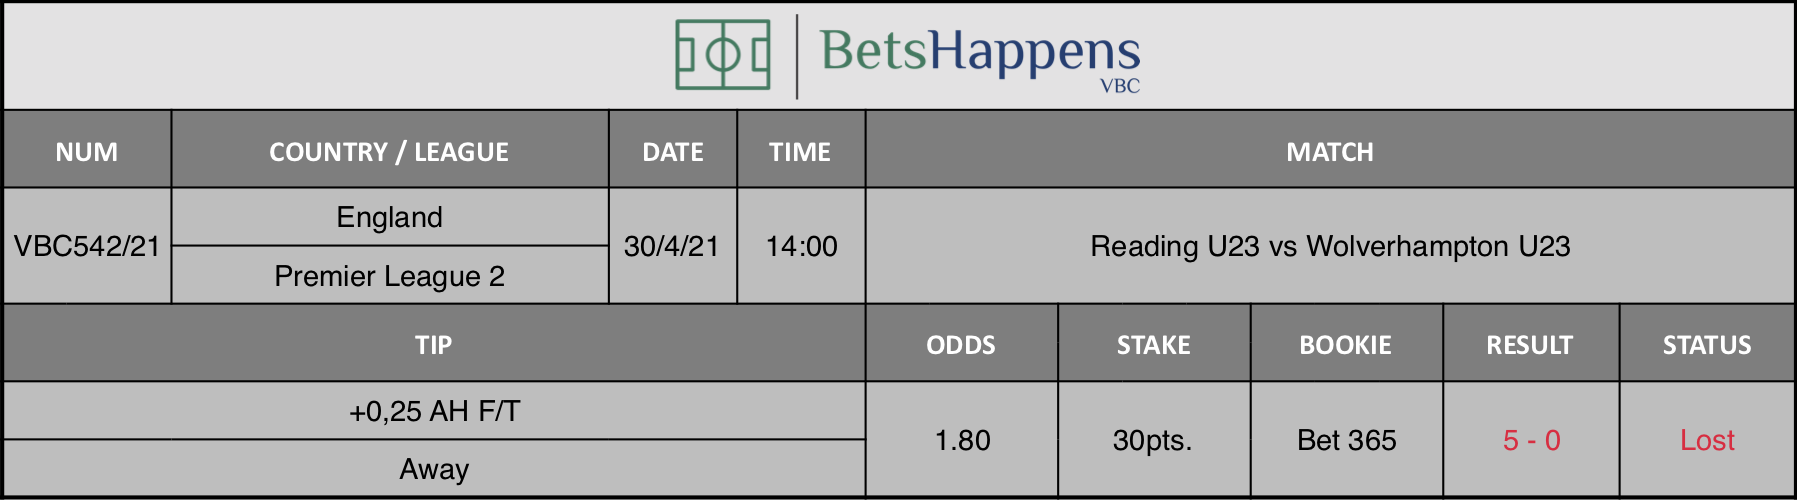 Results of our tip for the Reading U23 vs Wolverhampton U23  match where +0,25 AH F/T  Away is recommended.